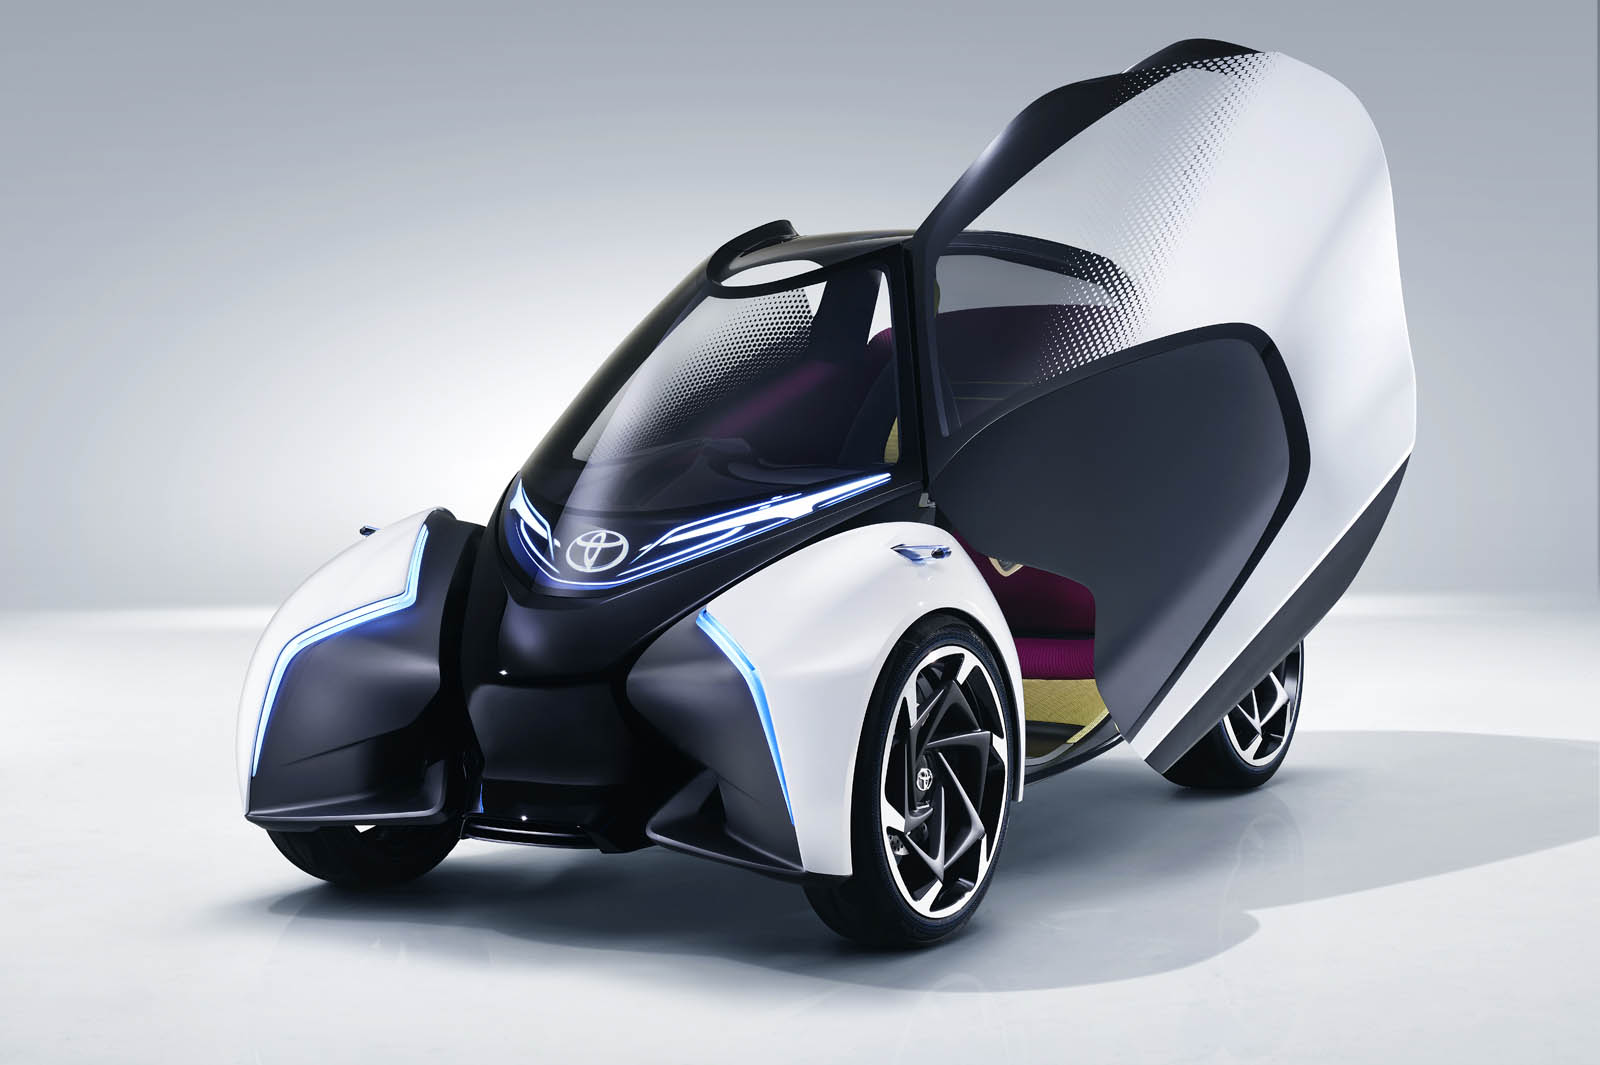 2017_Toyota_Concept_i-Tril_Static_01 copy